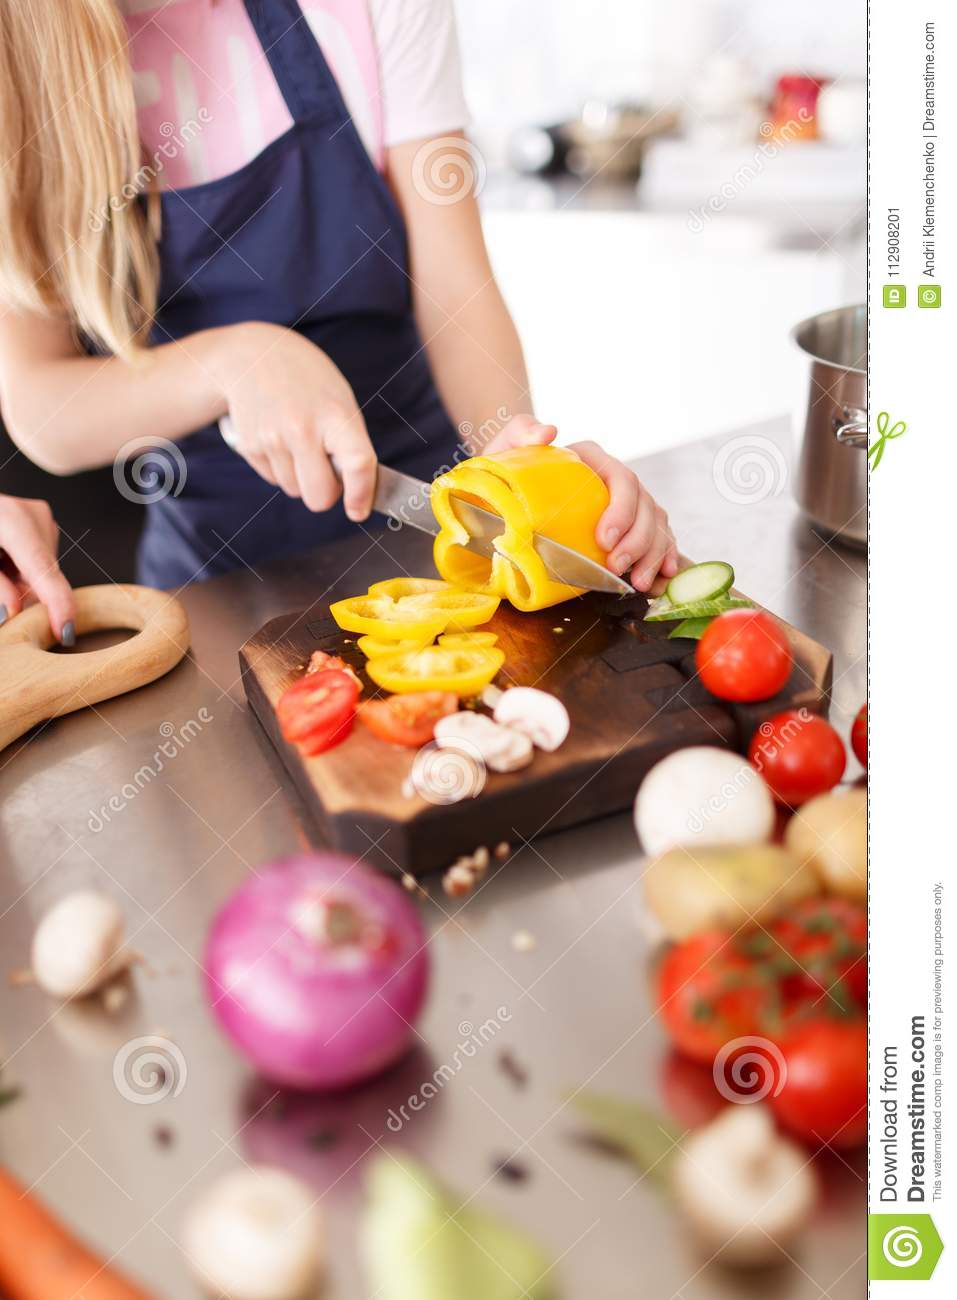 A Girl Cutting Vegetables For The Salad On A Wooden Desk In The